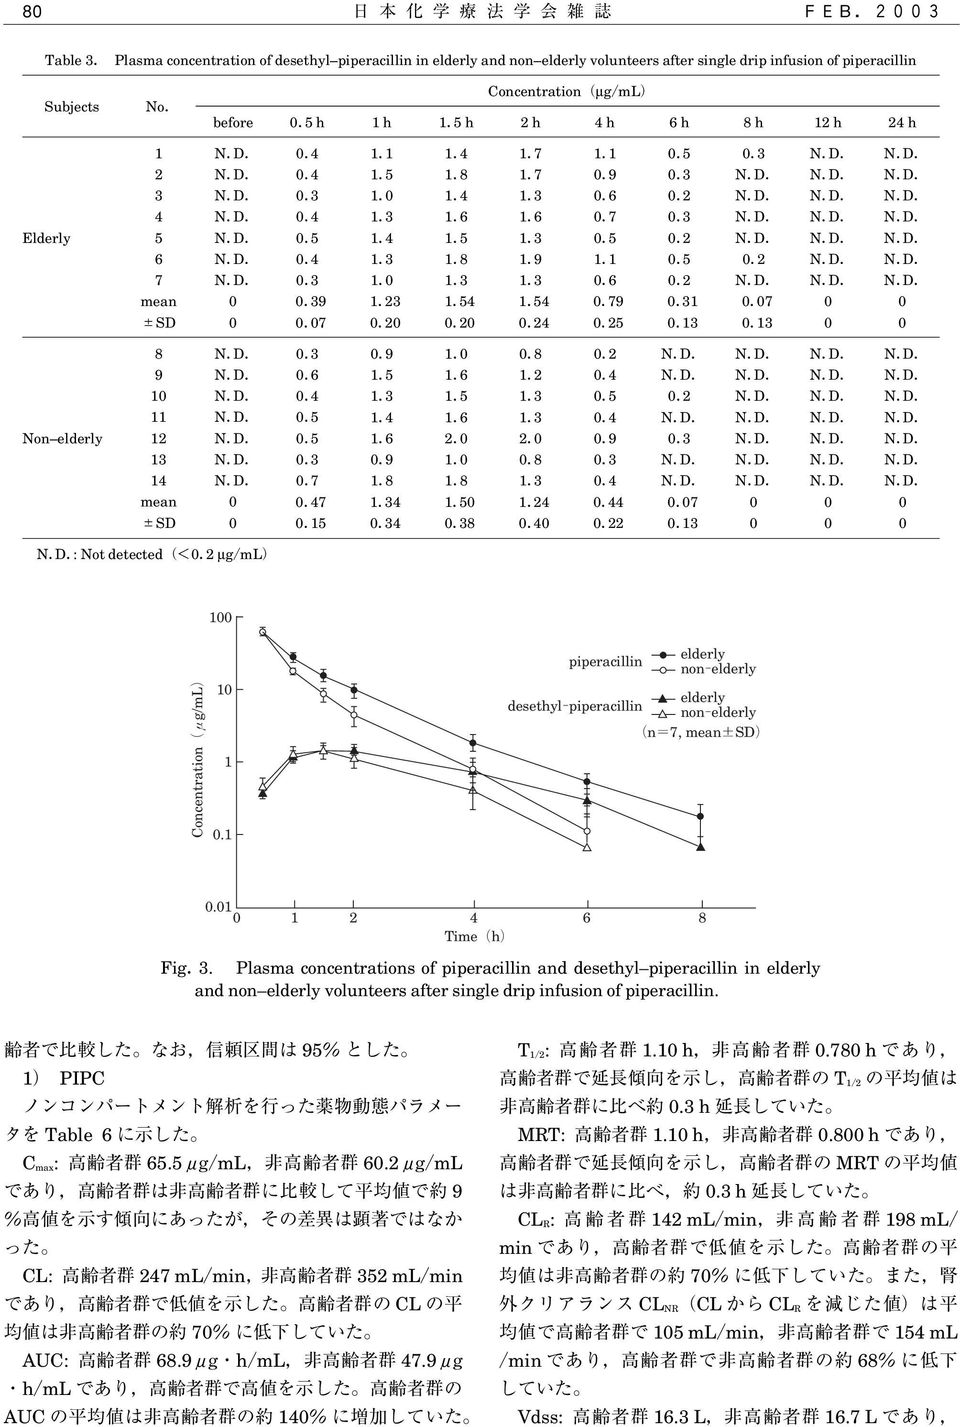 Plasma concentrations of piperacillin and desethyl piperacillin in elderly and non elderly volunteers after single drip infusion of piperacillin.